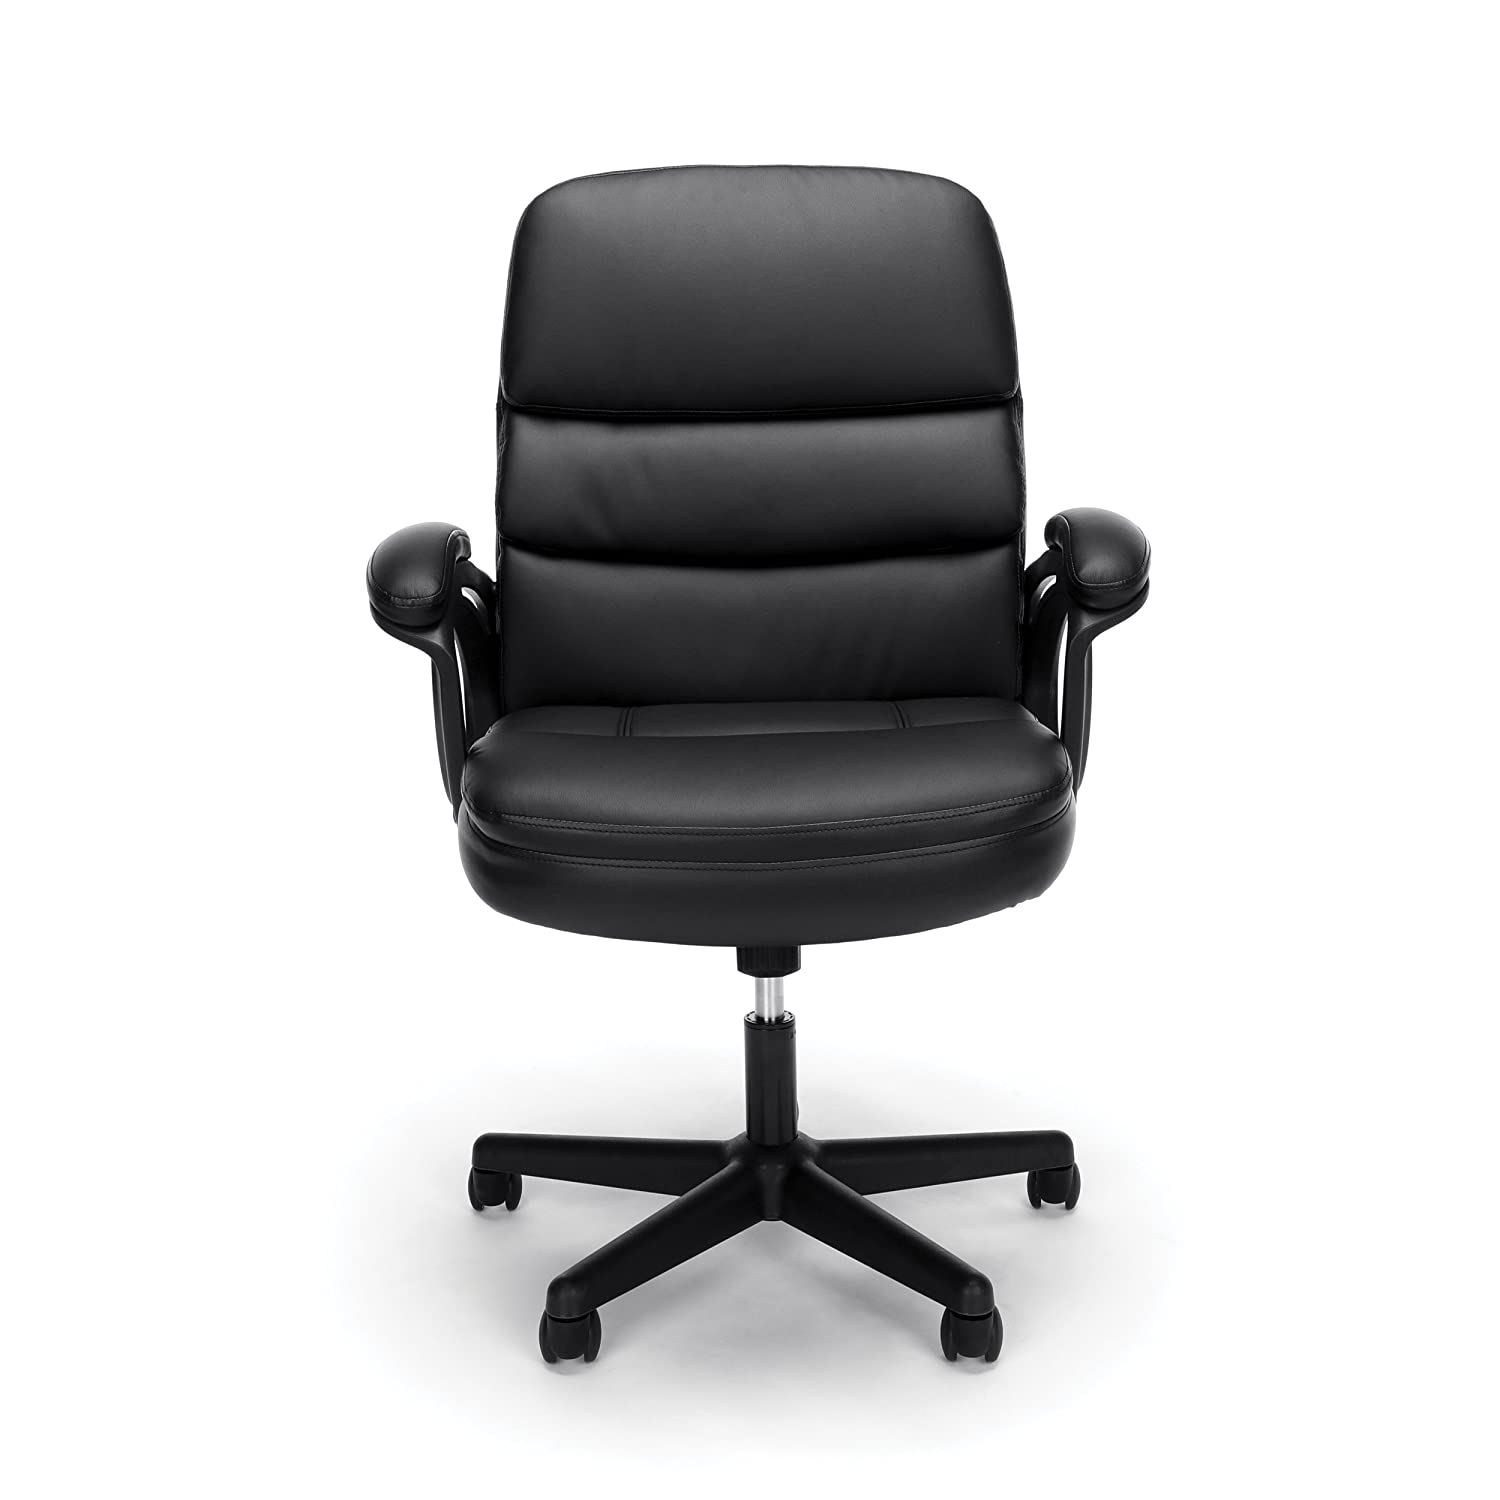 Essentials by OFM Leather Executive Chair, Ergonomic Managers Computer Office Chair, Black